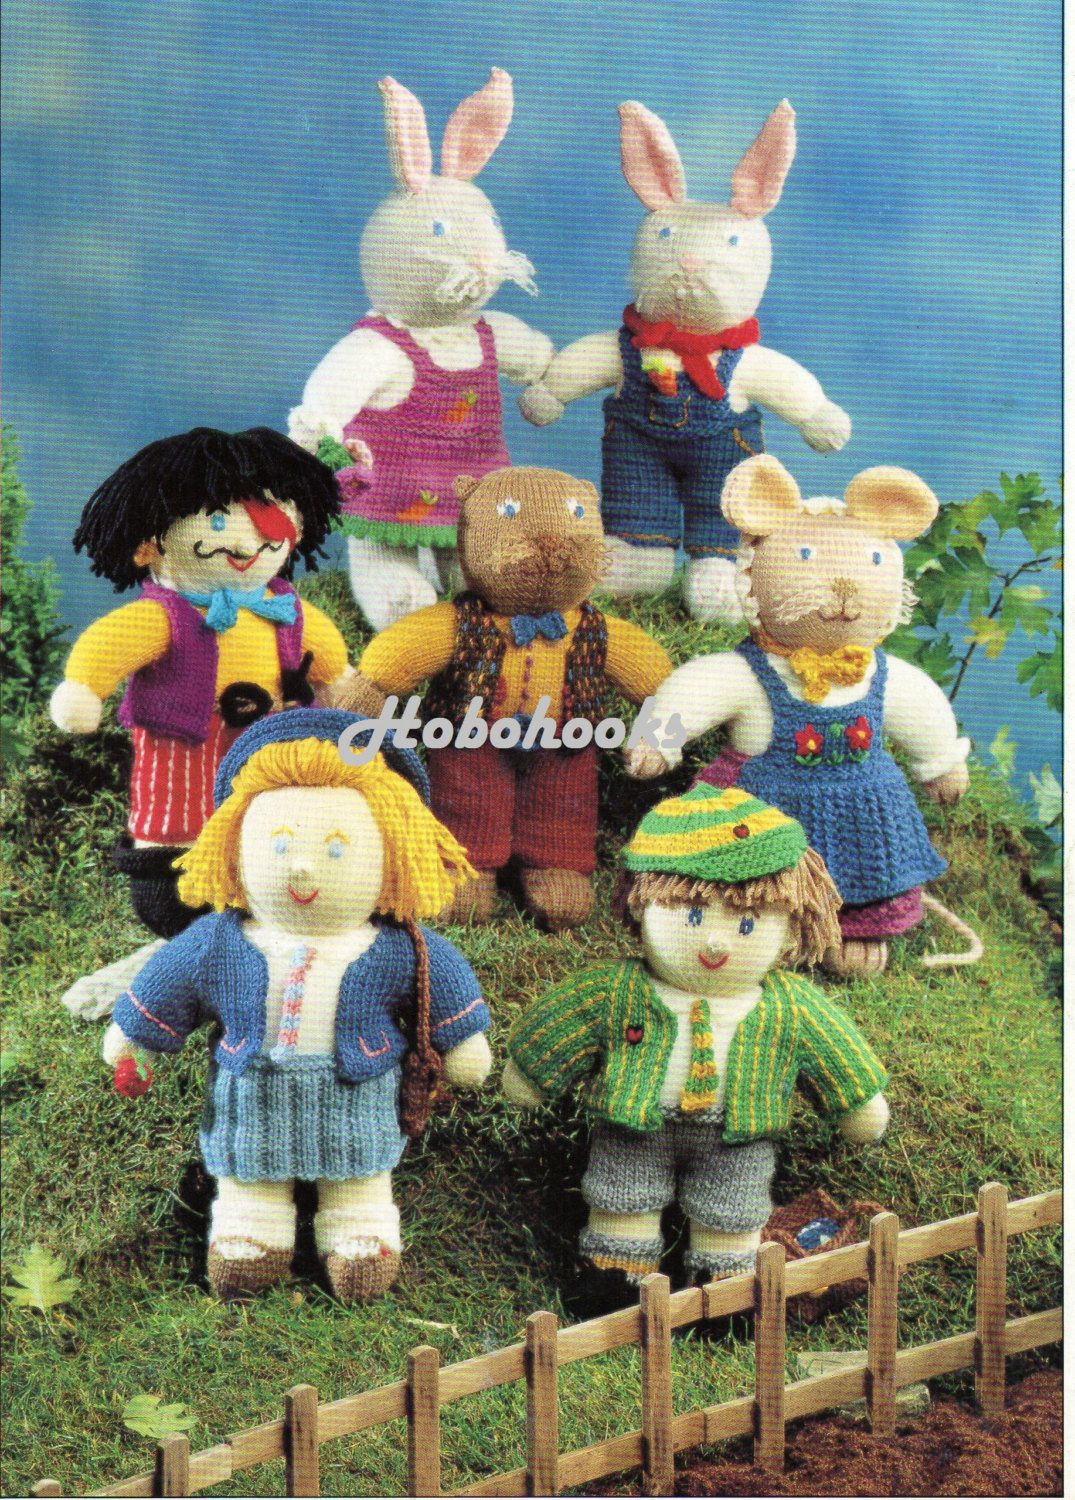 Knitted toys school children pirate bunnies mouse by Hobohooks